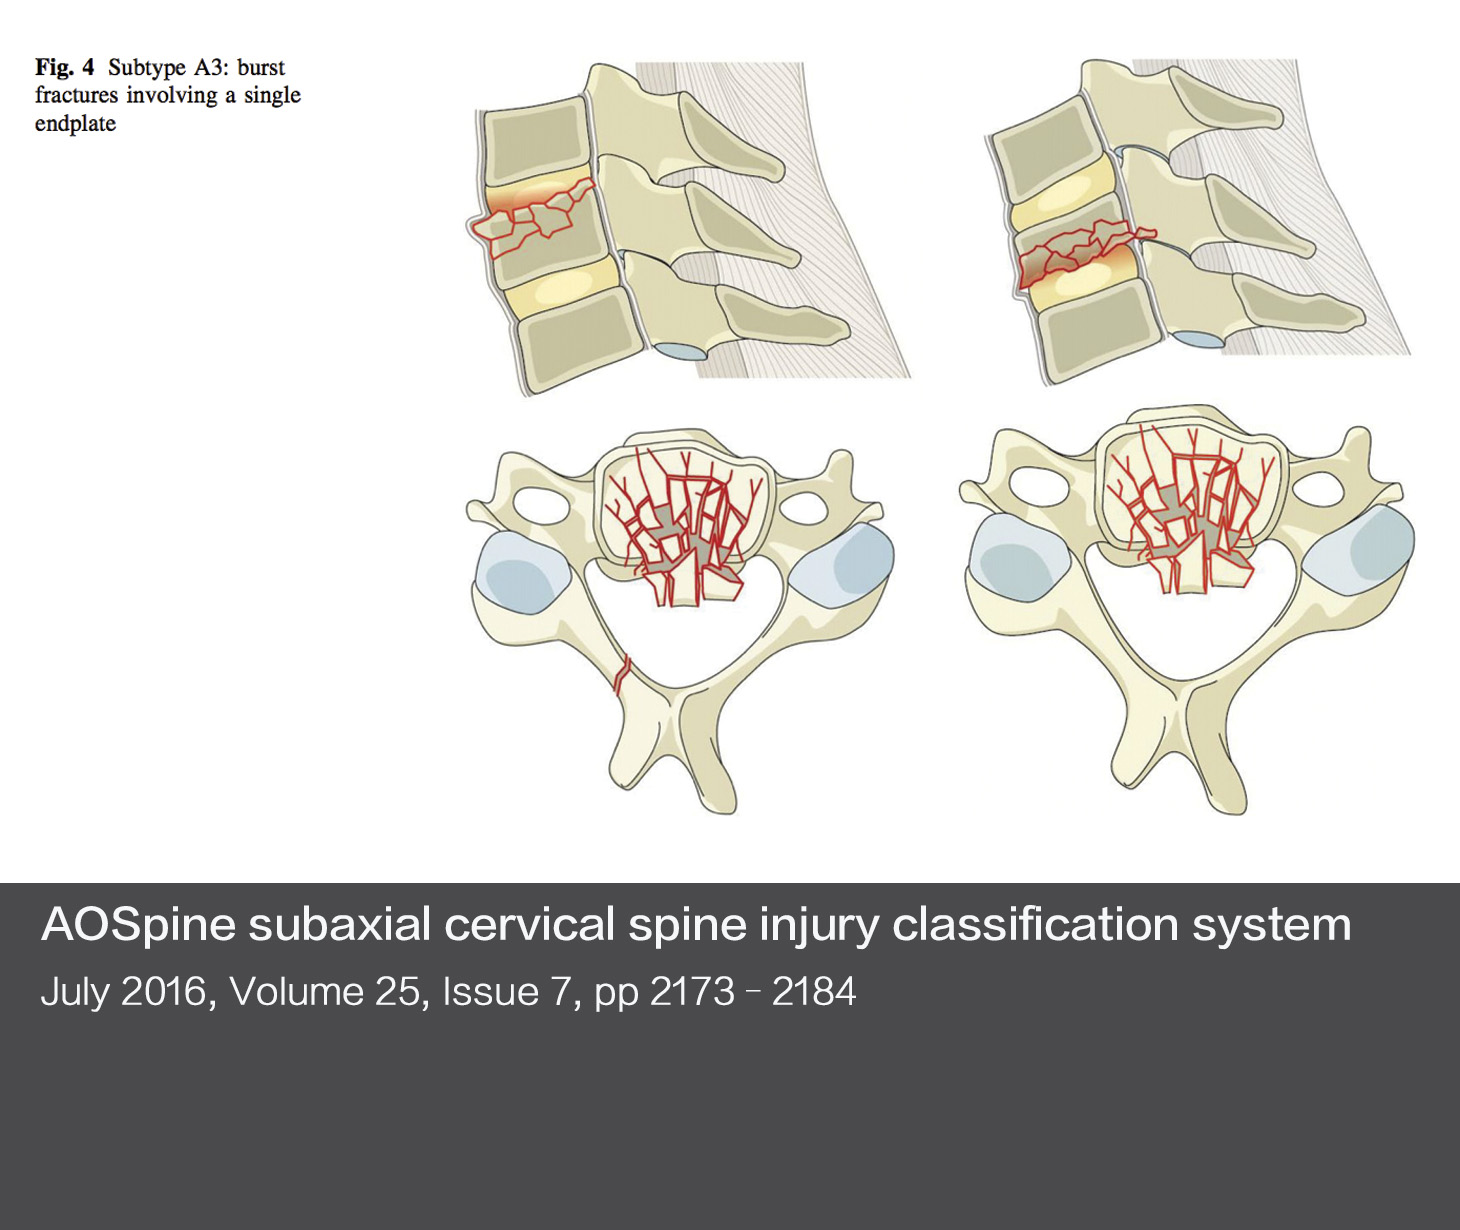 AOSpine subaxial cervical spine injury classification system